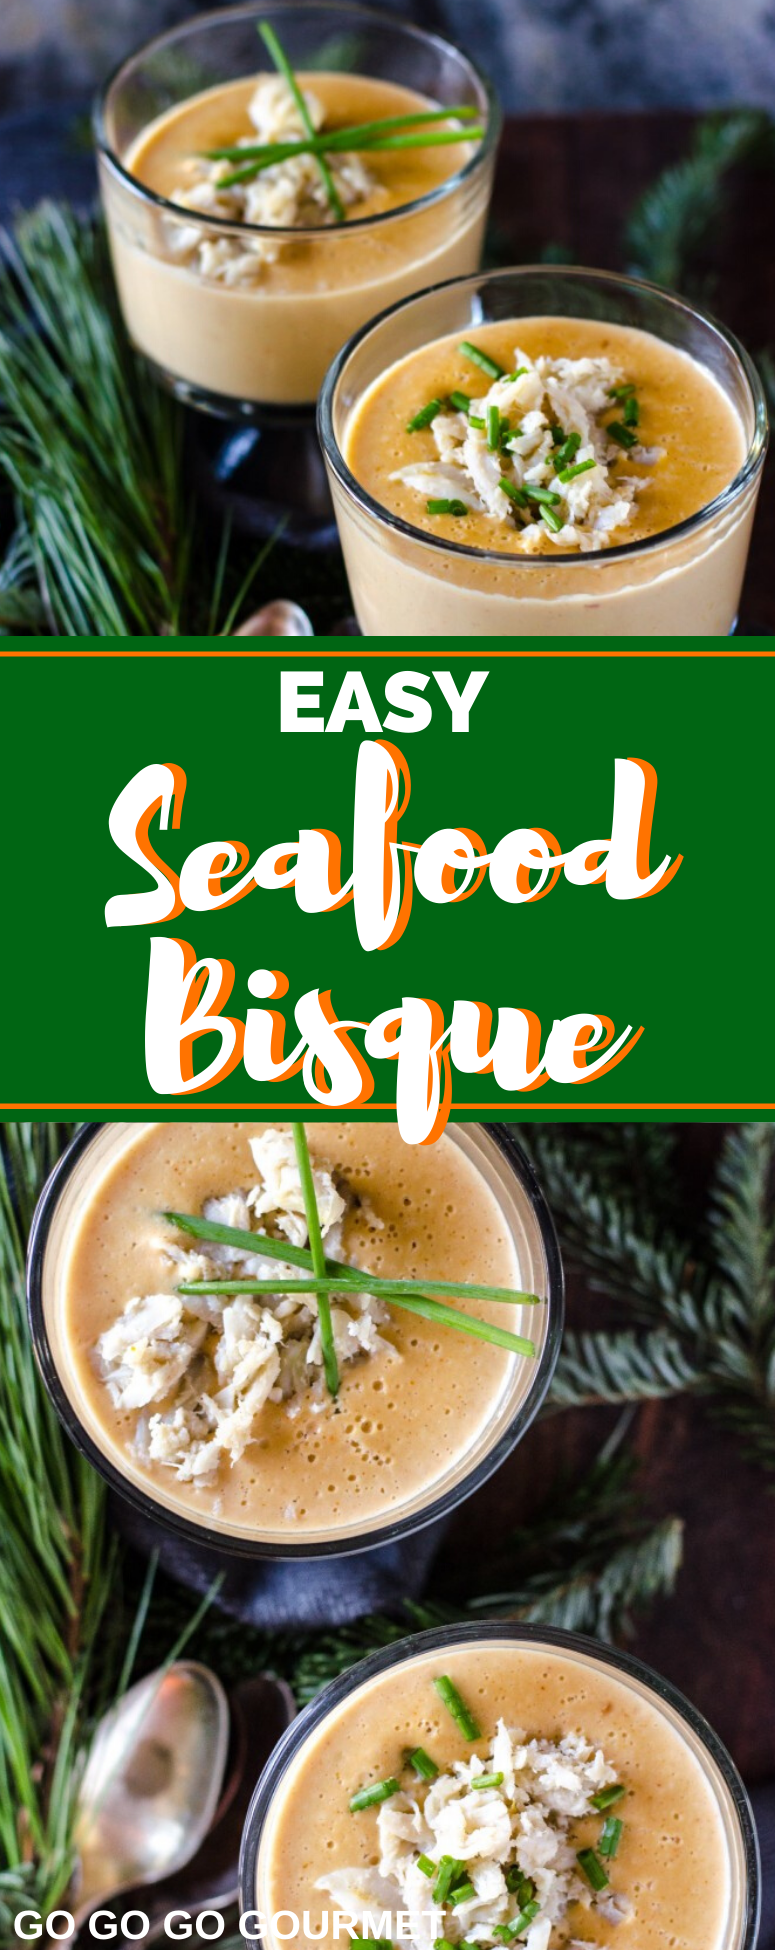 This Easy Seafood Bisque recipe is chock full of crab and shrimp! When you're craving a creamy and comforting soup for dinner, this bisque is the answer! #seafoodbisque #seafoodrecipes #comfortfood #gogogogourmet via @gogogogourmet